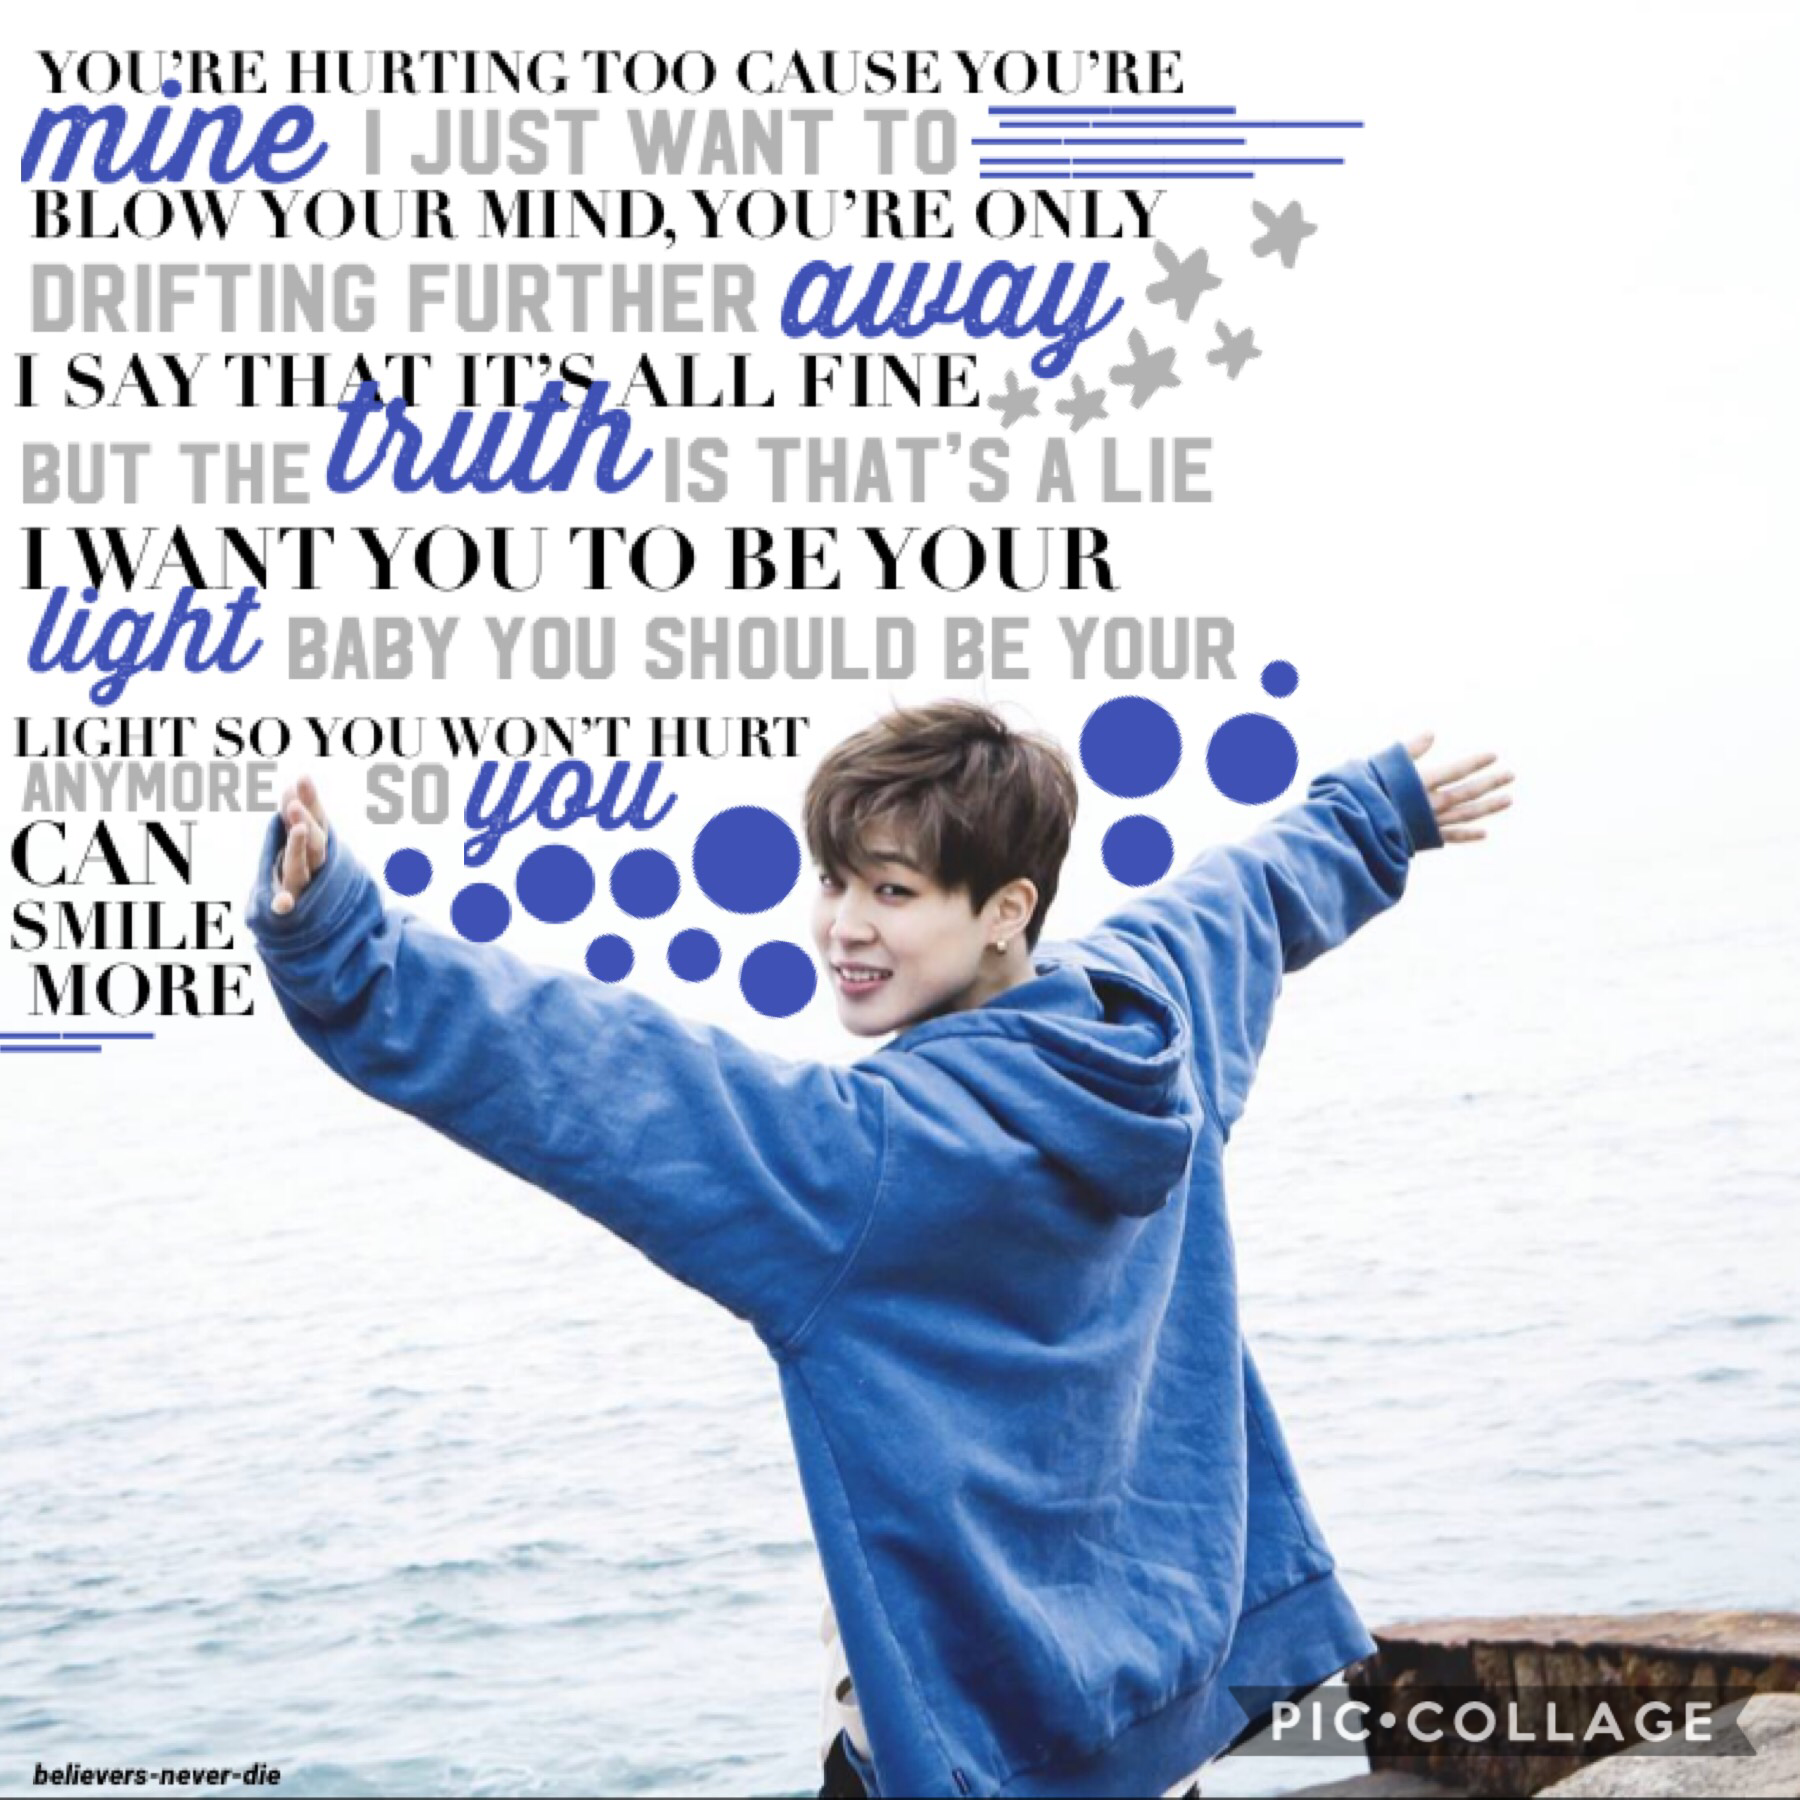 🌧promise // tap🌧  ah this isn't too good but oh well! i love this song so much, this man really means the world to me!! i'm going to see panic! in a week and i'm so excited omggggg. also a bts comeback in less than a month oof i'm not prepared! <3